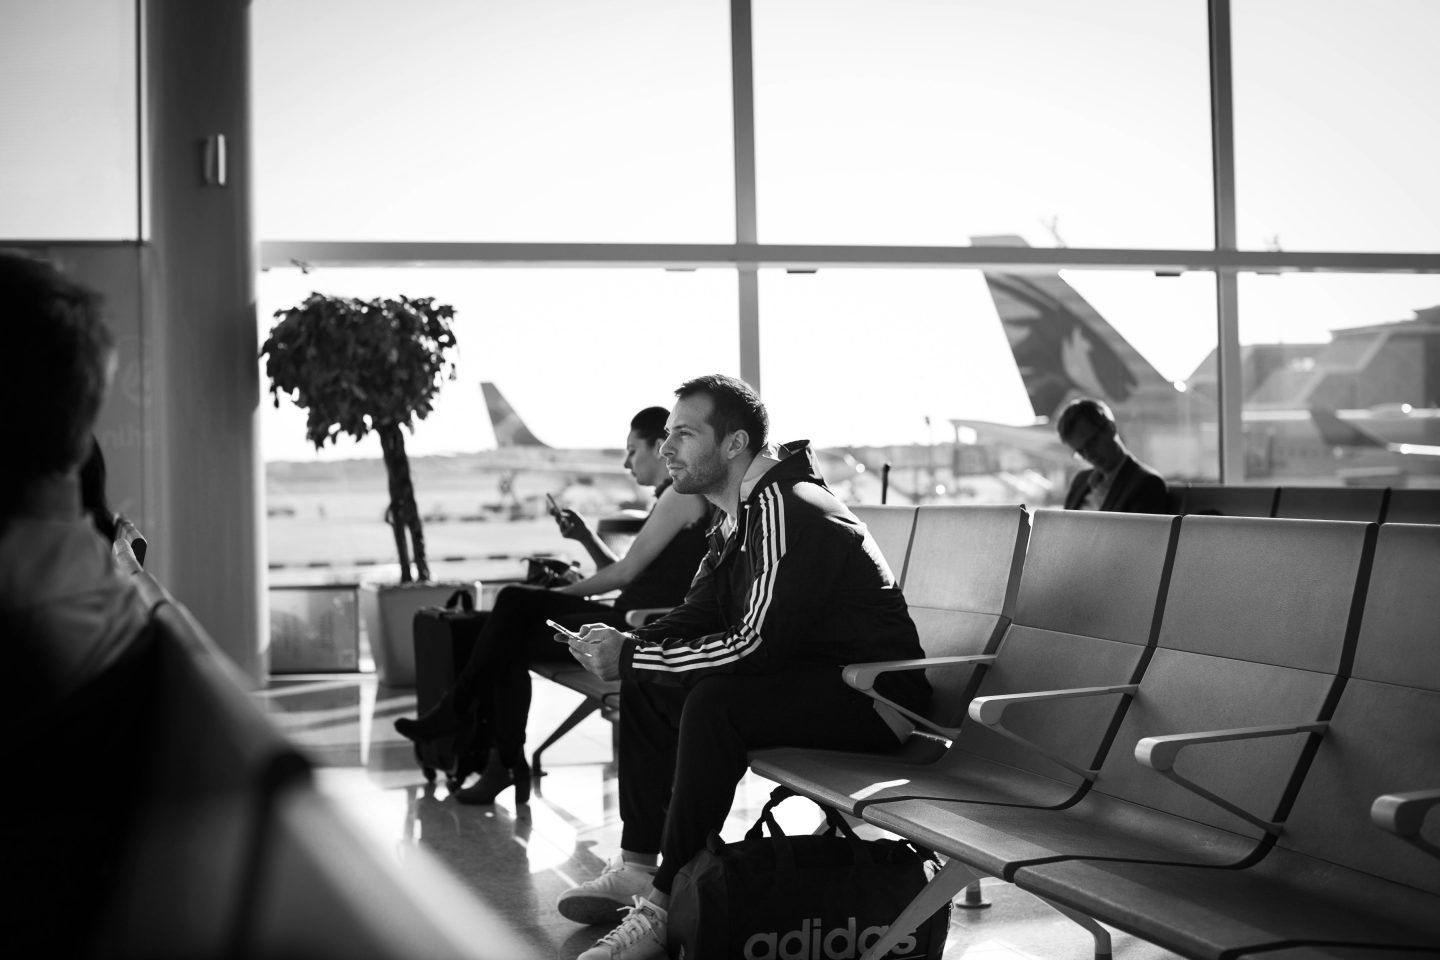 Man waiting at the airport for his flight   Fear of change